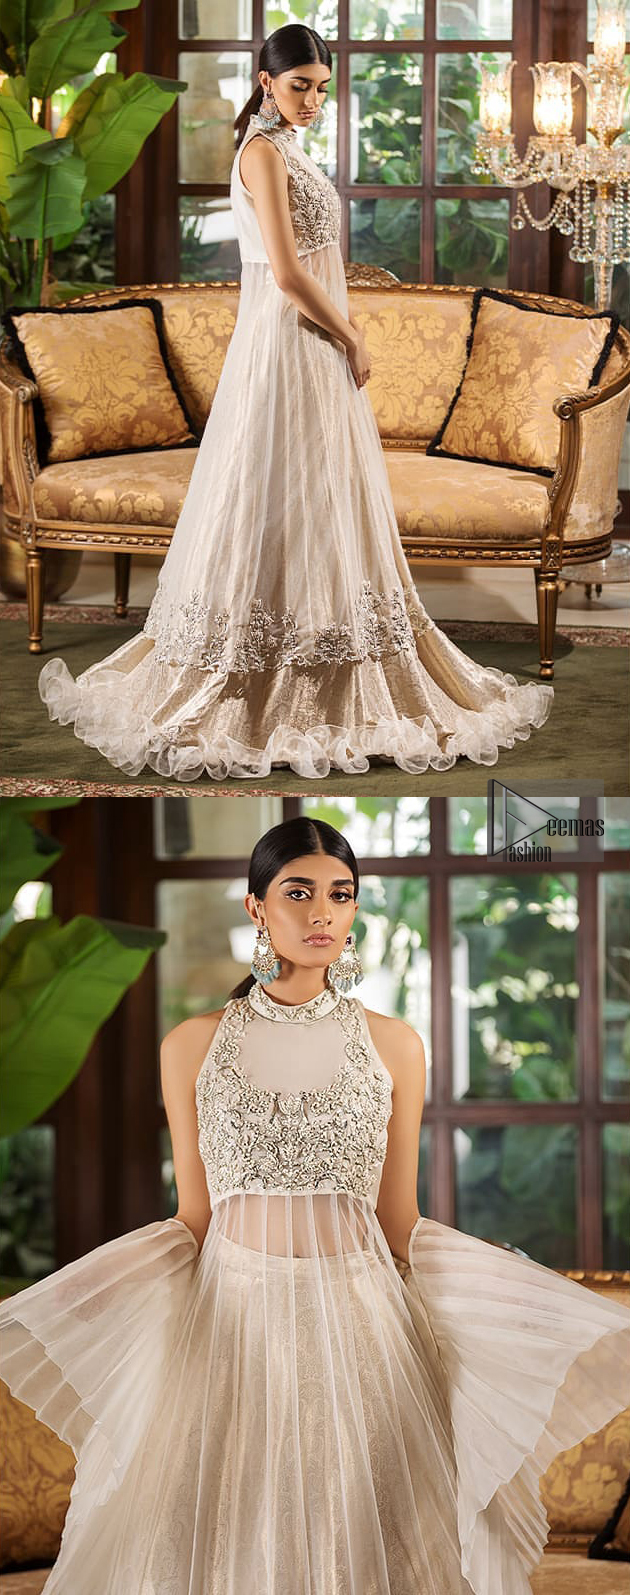 This halter neck frock is majestic beauty. Delicately crafted and personifying chic elegance with an element of grandiose. A full heavily embroidered bodice done with silver and gray zardozi work. The bottom of the frock is enhanced with rich floral embroidery and wide hemline. It comprises with brocade lehenga and net frilled lift the whole lehenga bottom. Complete the look with tea rose dupatta sprinkled with sequins on all over the ground.